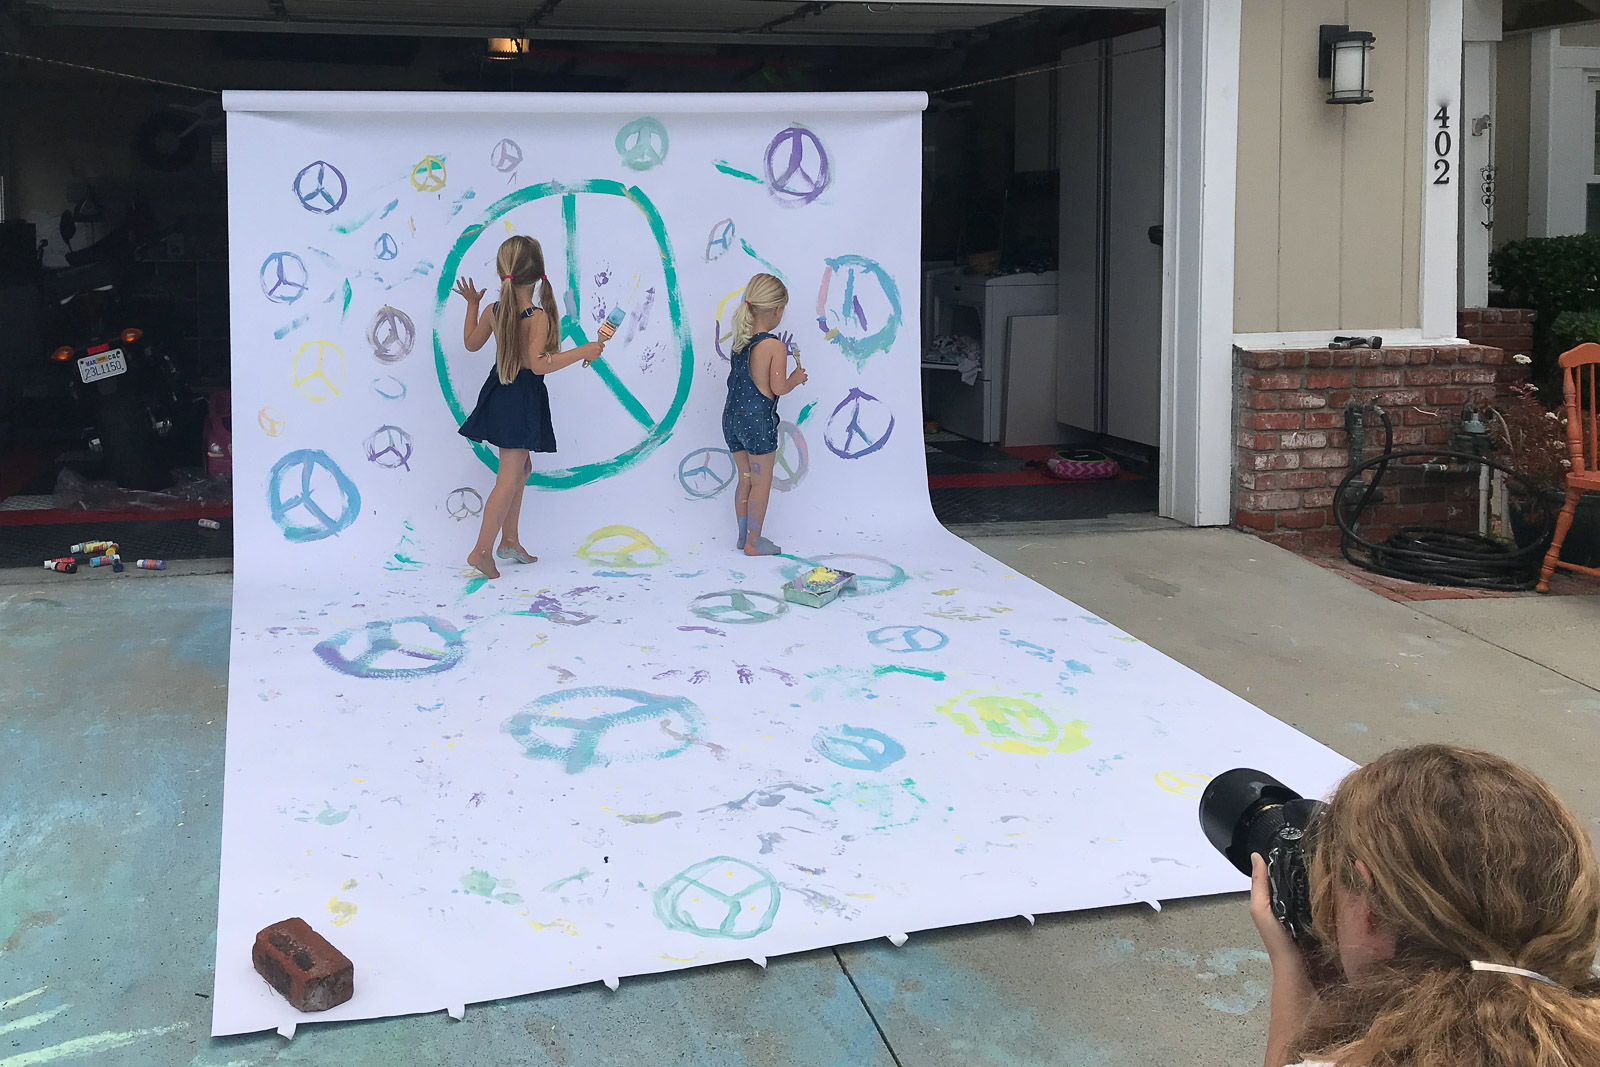 Unexpected Backdrop pullback of kids painting peace signs on large paper karlee hooper